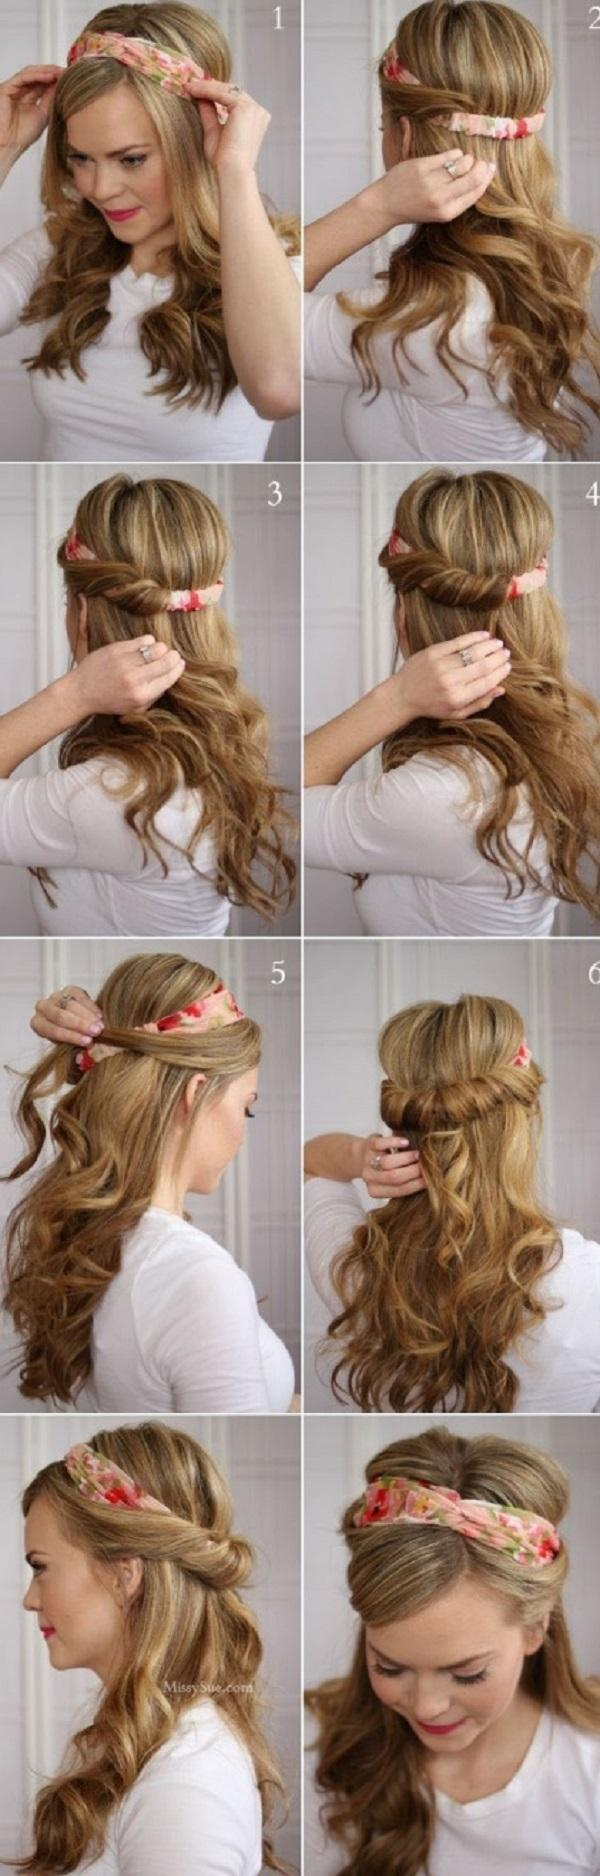 12 Easy Hairstyles for long hair  Cuded